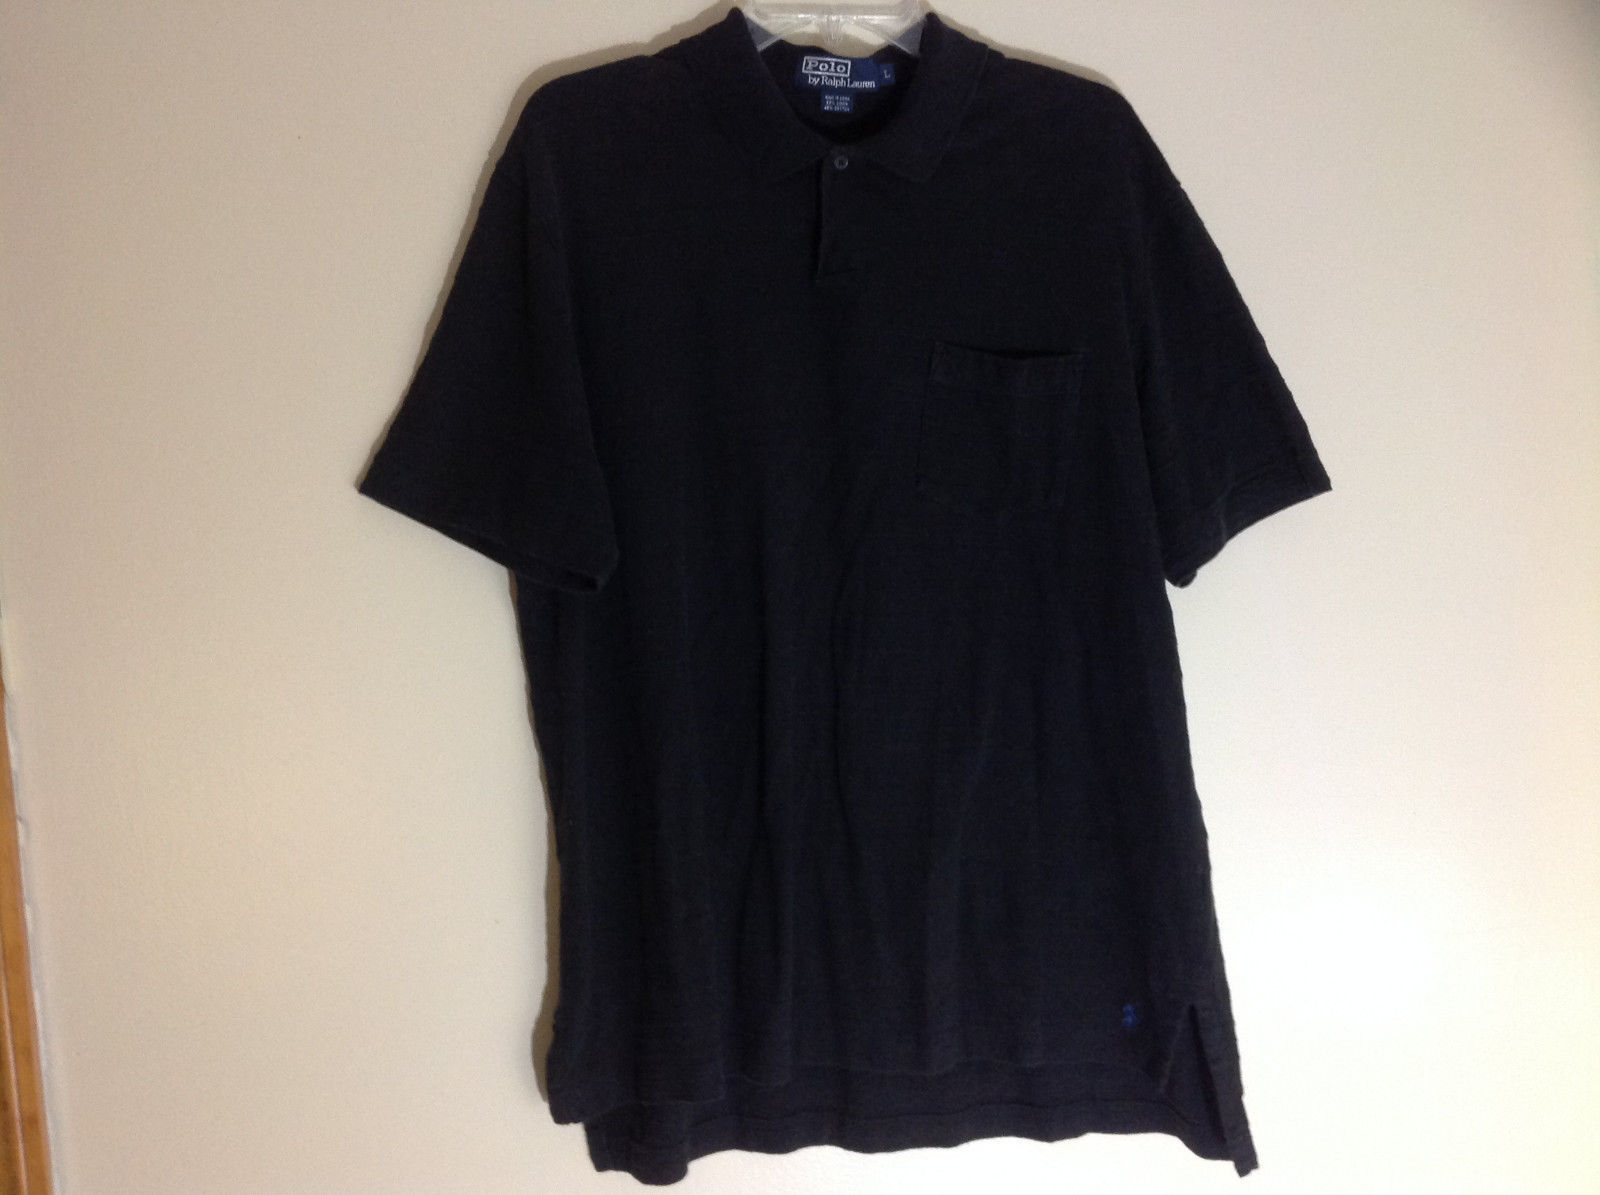 Polo by Ralph Lauren Black Short Sleeve Polo Shirt Front Pocket on Chest Size L